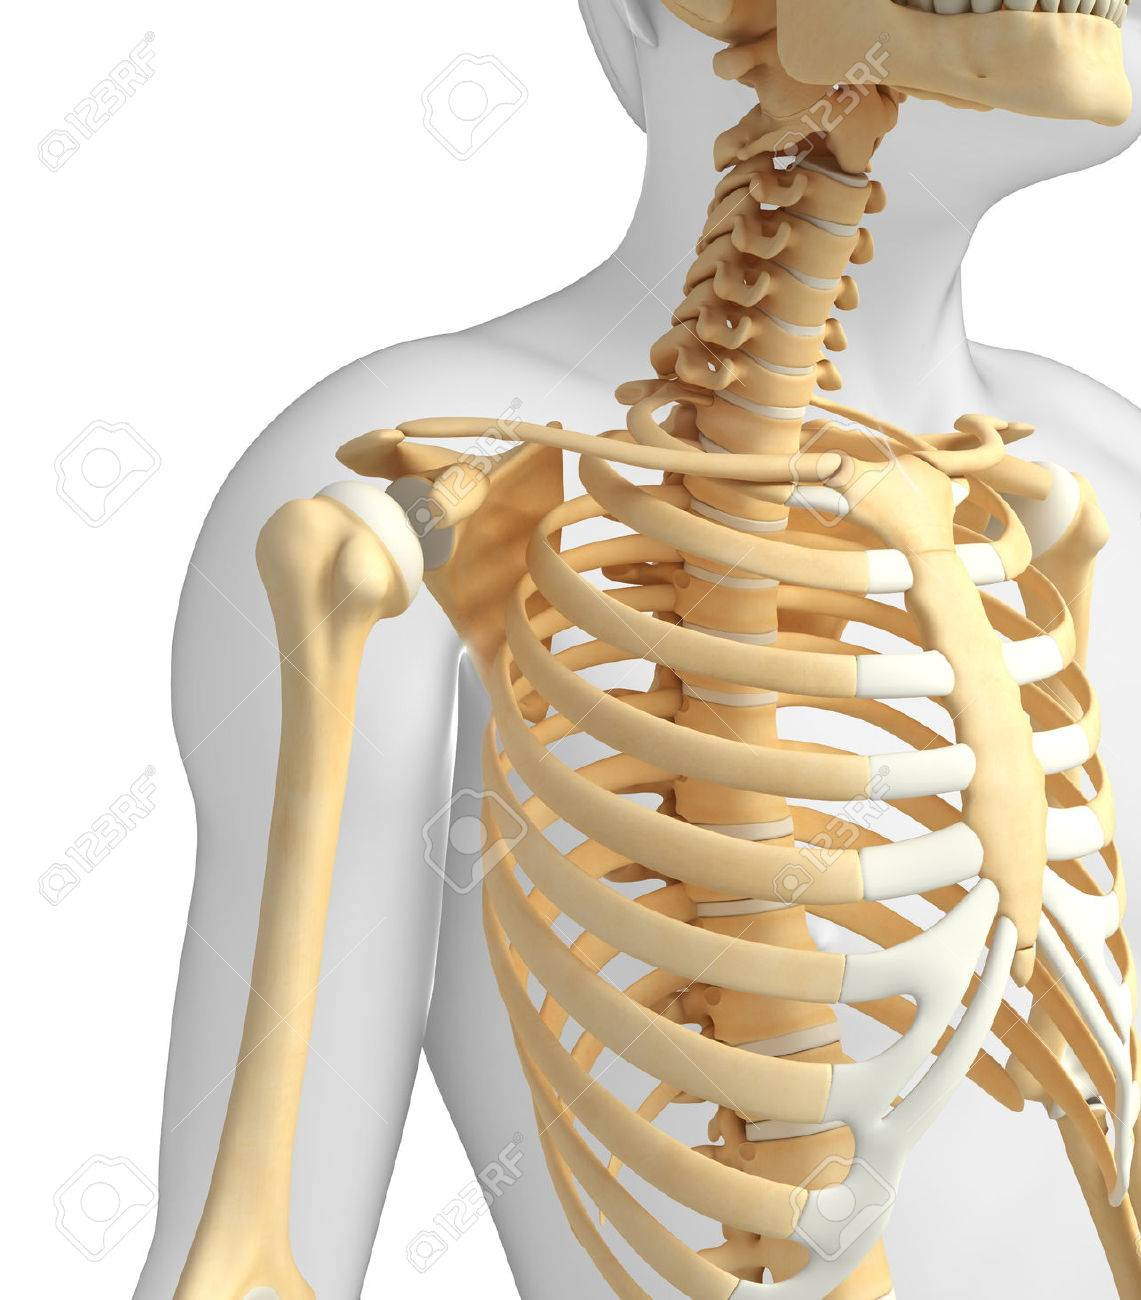 Illustration Of Shoulder Skeleton Stock Photo, Picture And Royalty ...